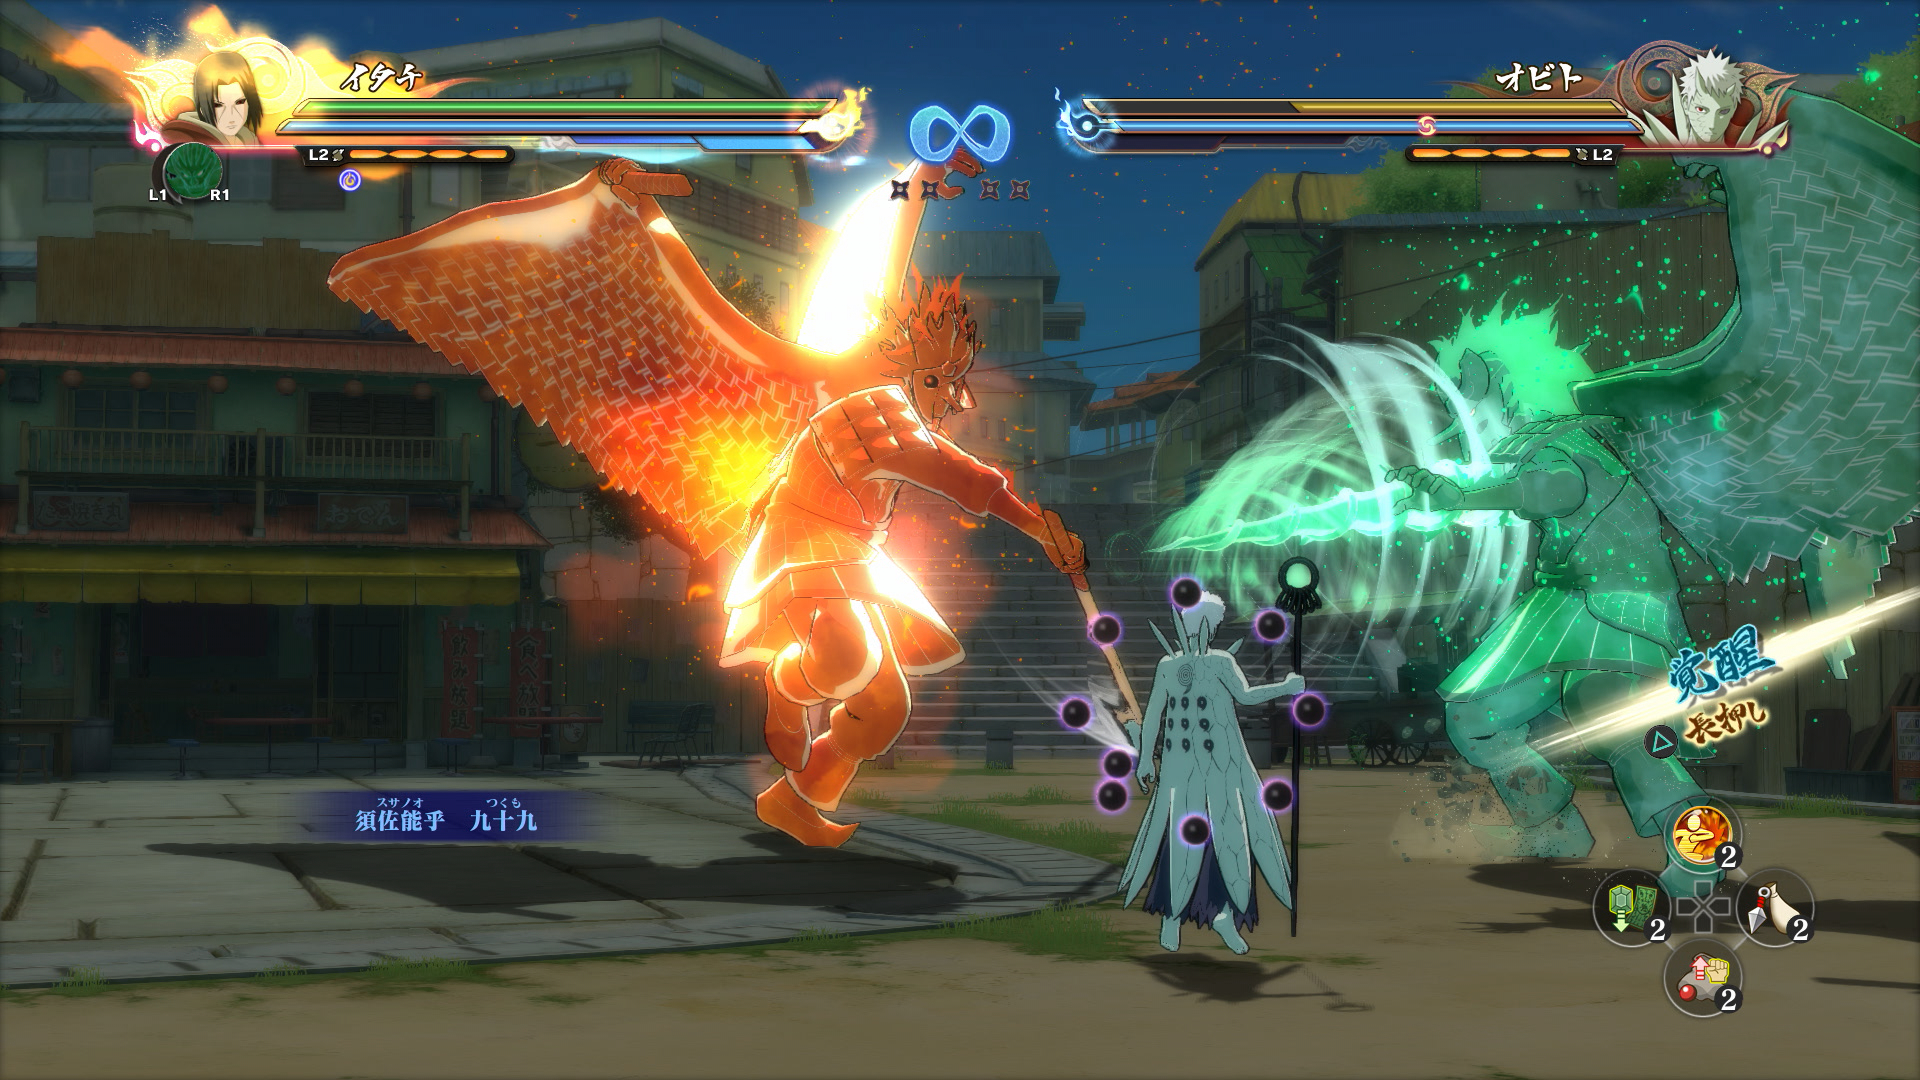 Naruto Shippuden Ultimate Ninja Storm 4 Review   Reviews   The Escapist